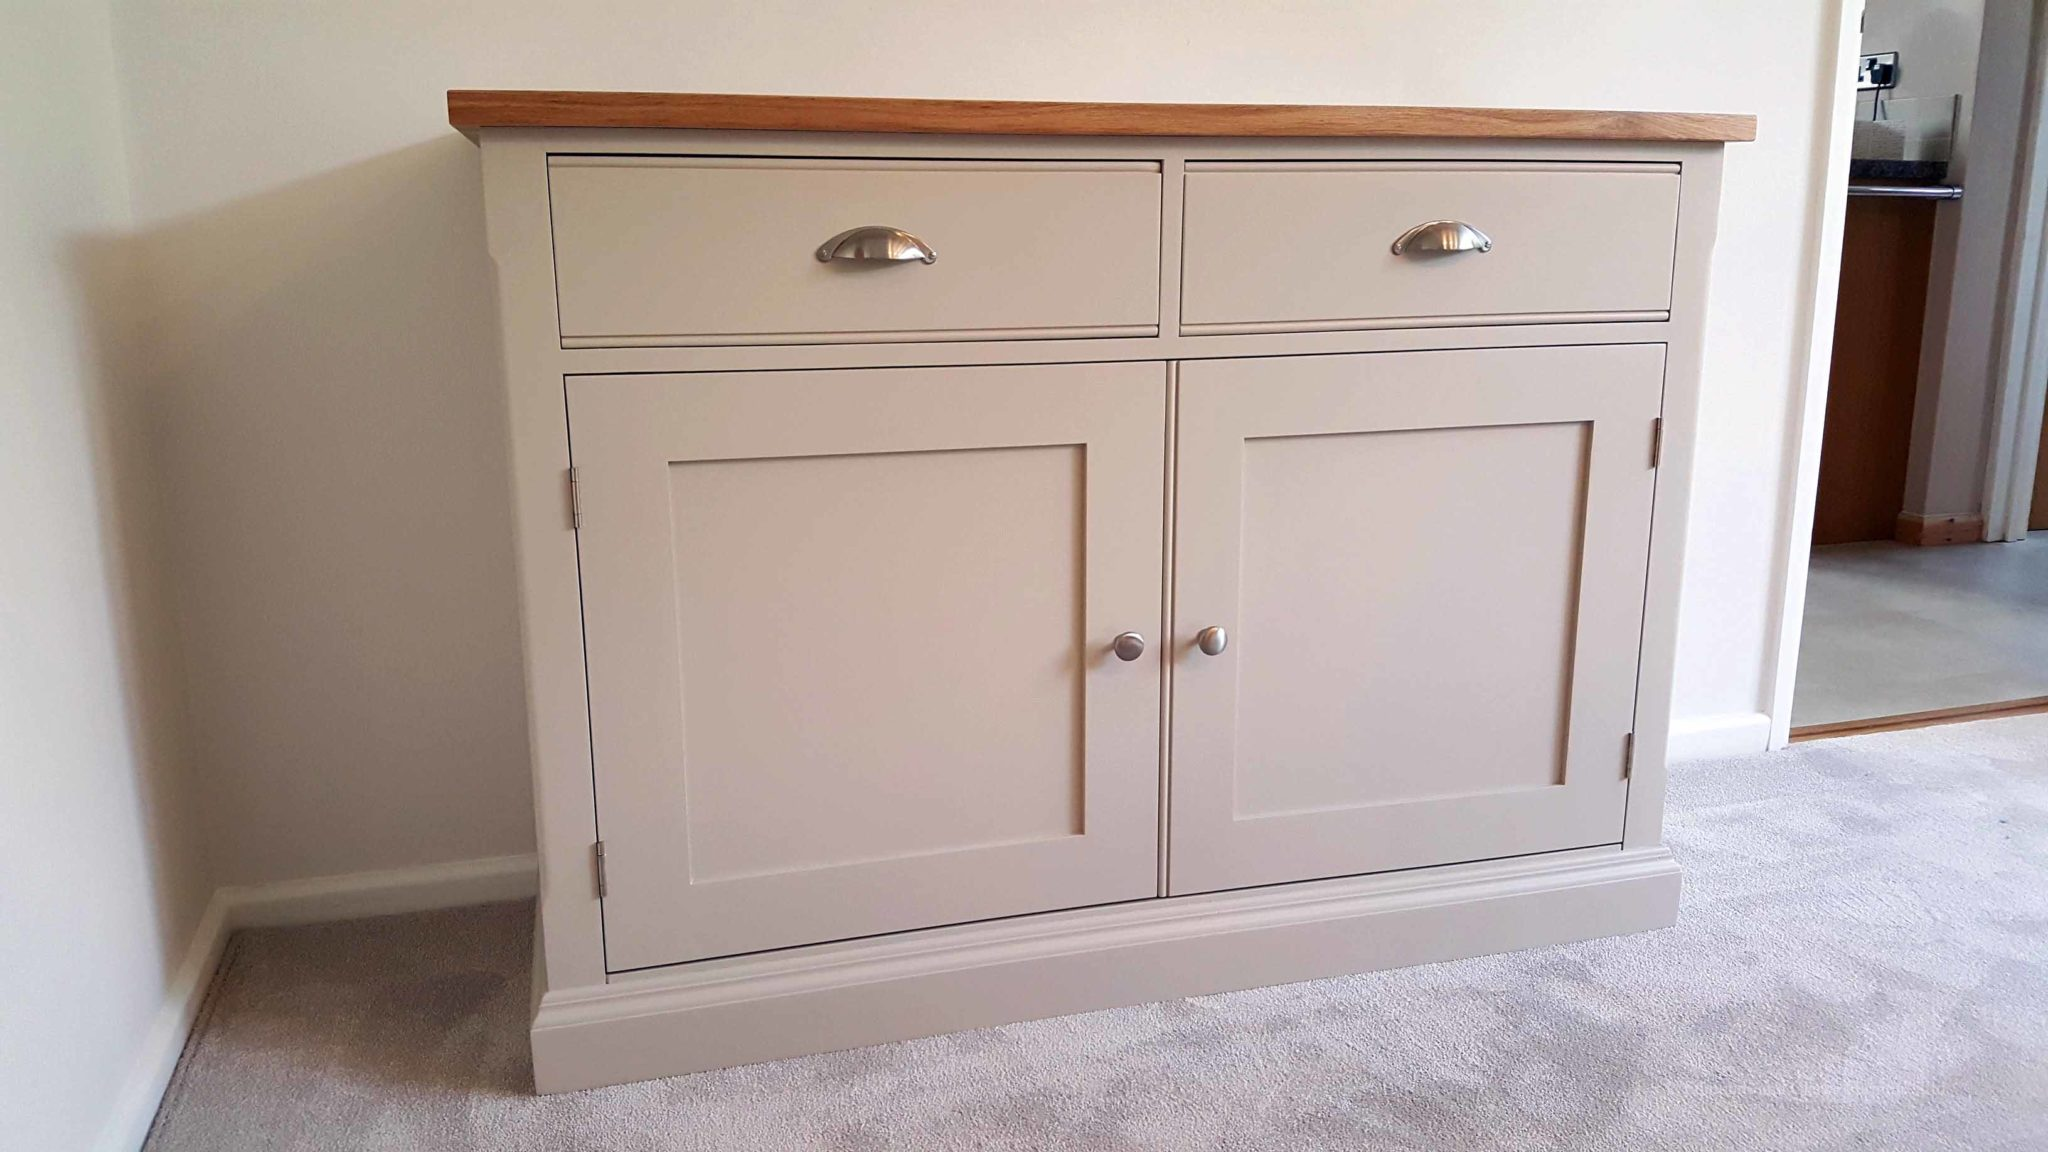 Edmunds Painted 4ft Sideboard. 25mm oak top. 2 drawers and 2 doors with adjustable shelves within. image showing dunwich stone with chrome cup handles and knobs. choice of handles. EDM040